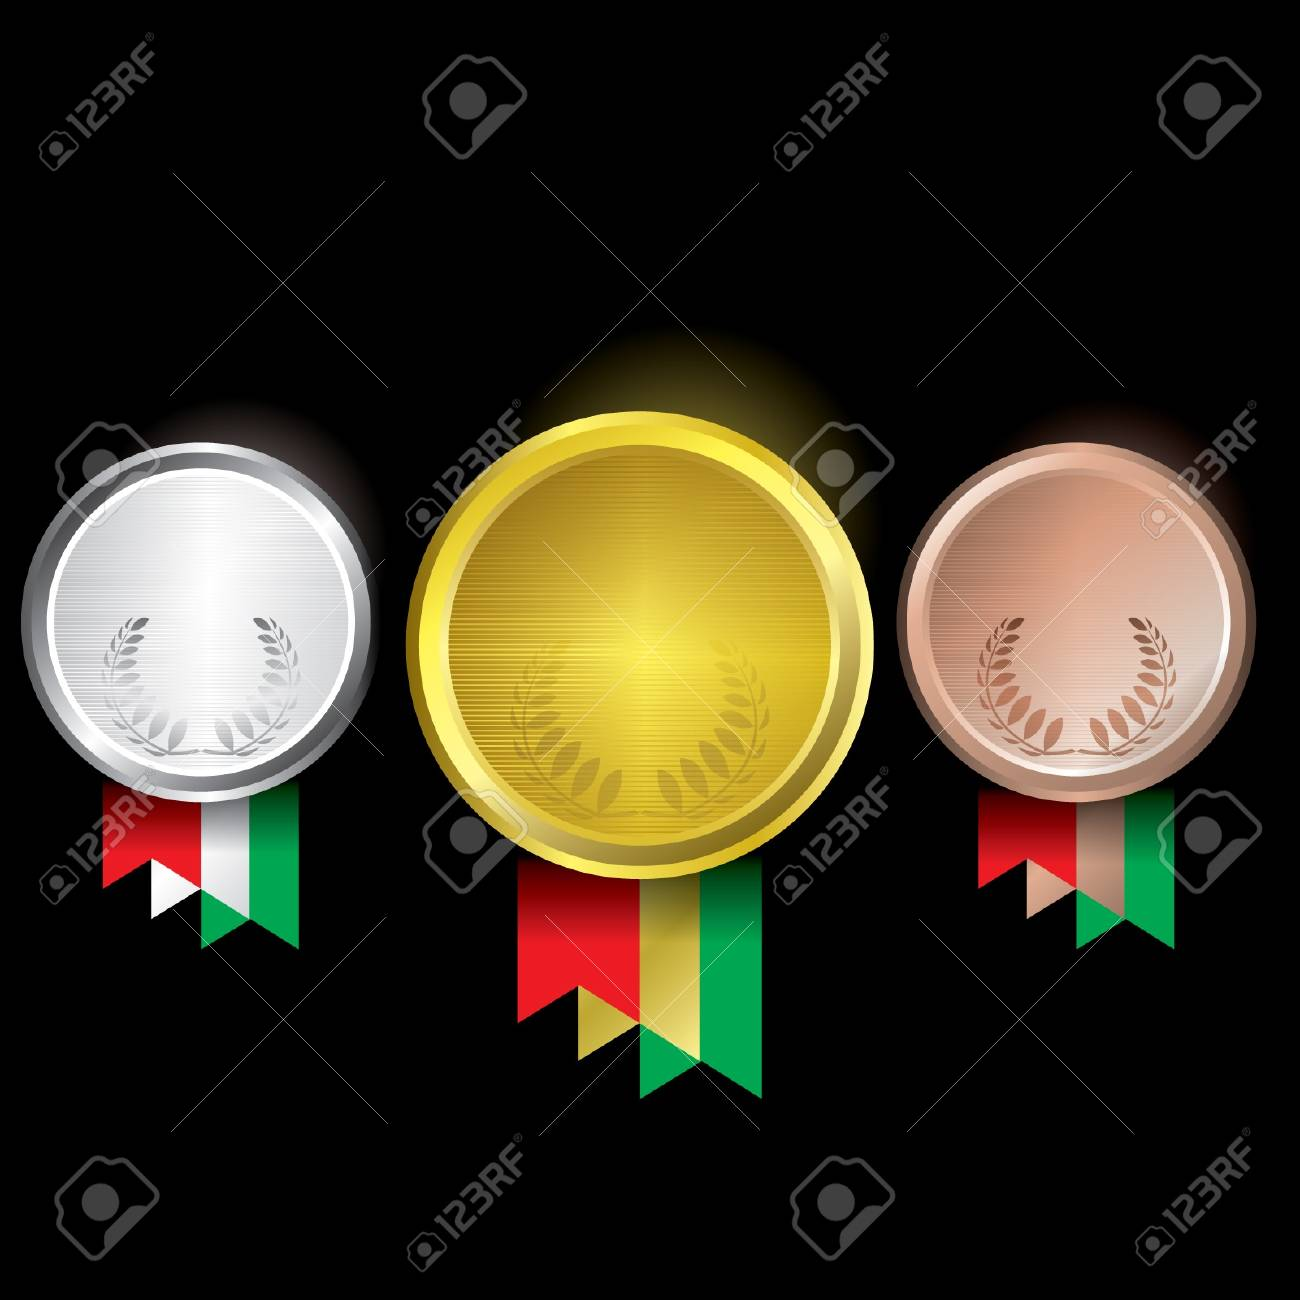 Awards as medals - gold, silver and bronze Stock Vector - 14179932